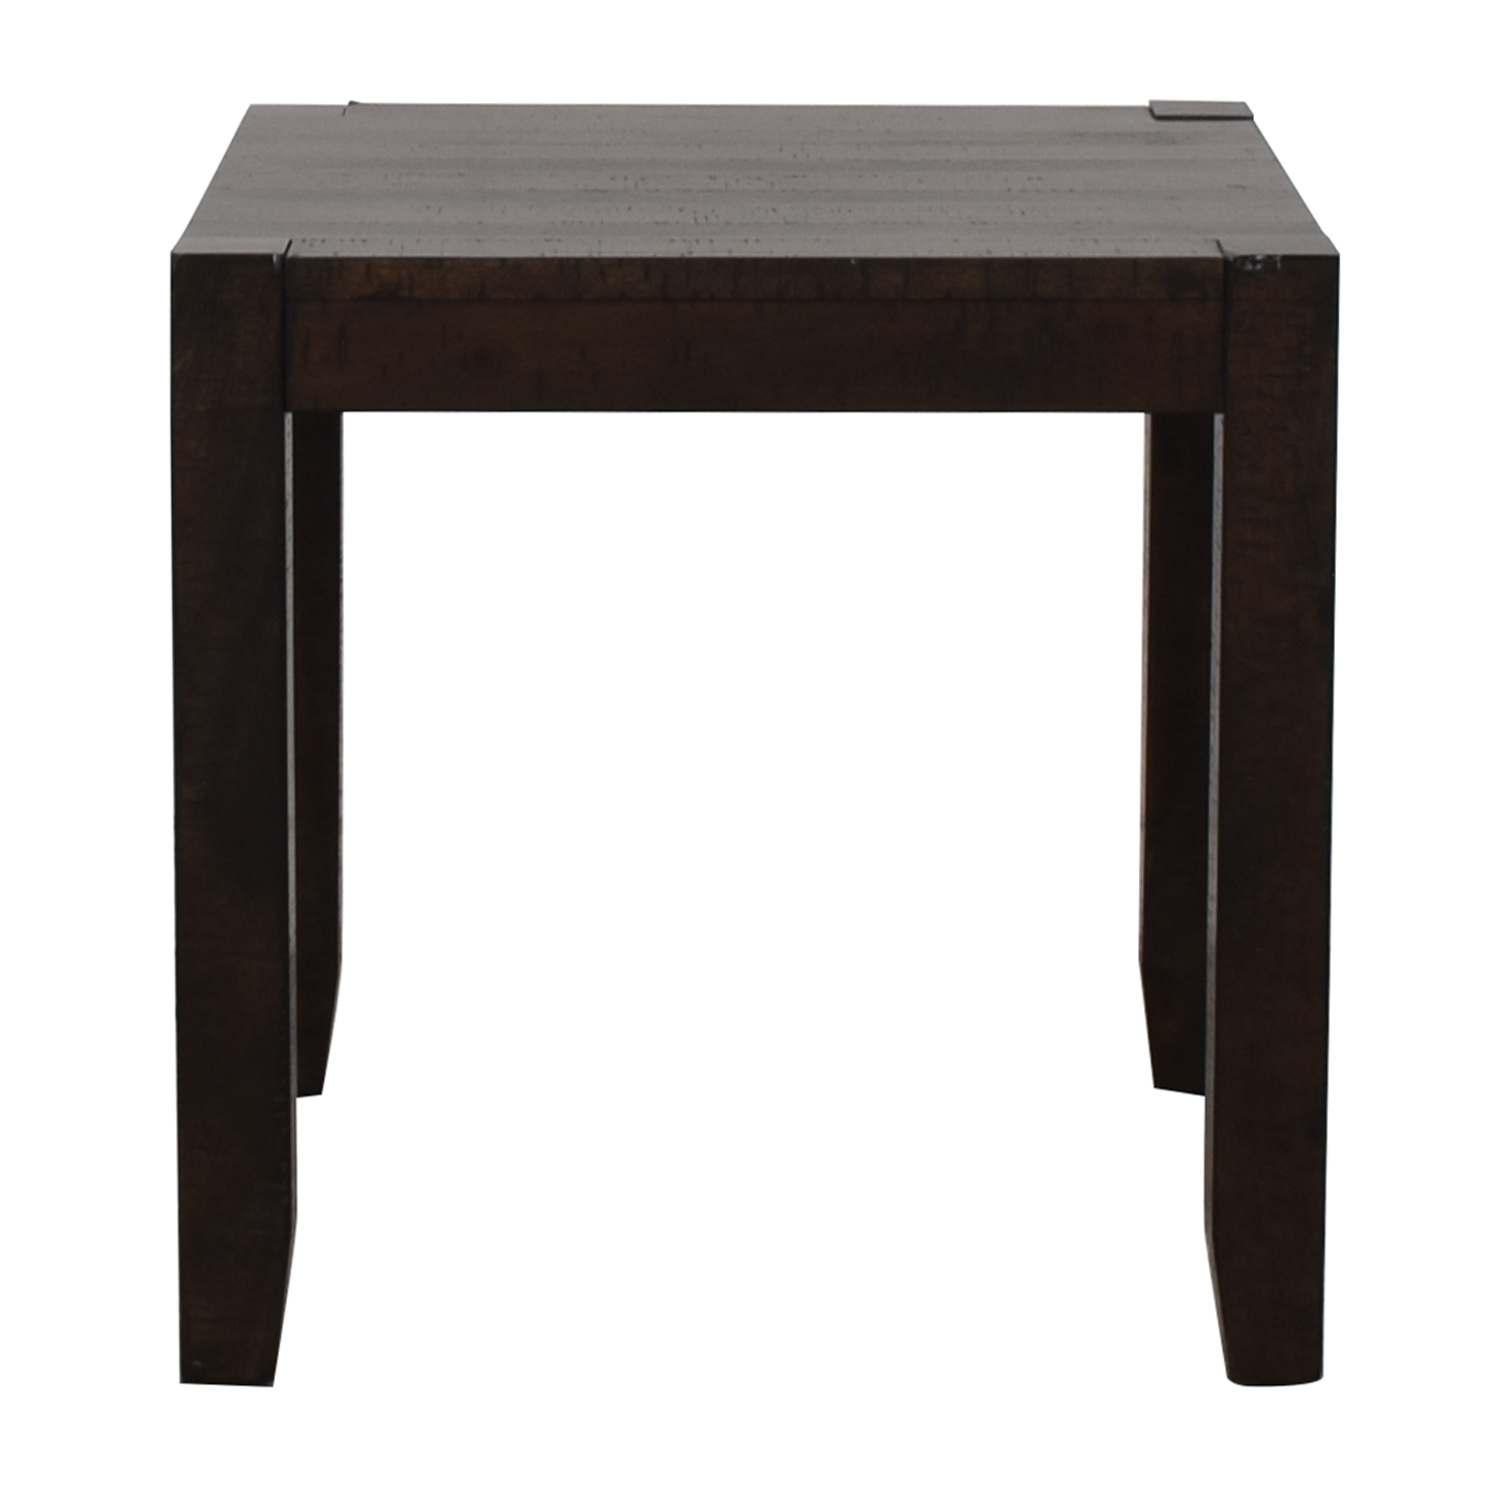 shop Bob's Discount Furniture Side Table Bob's Discount Furniture